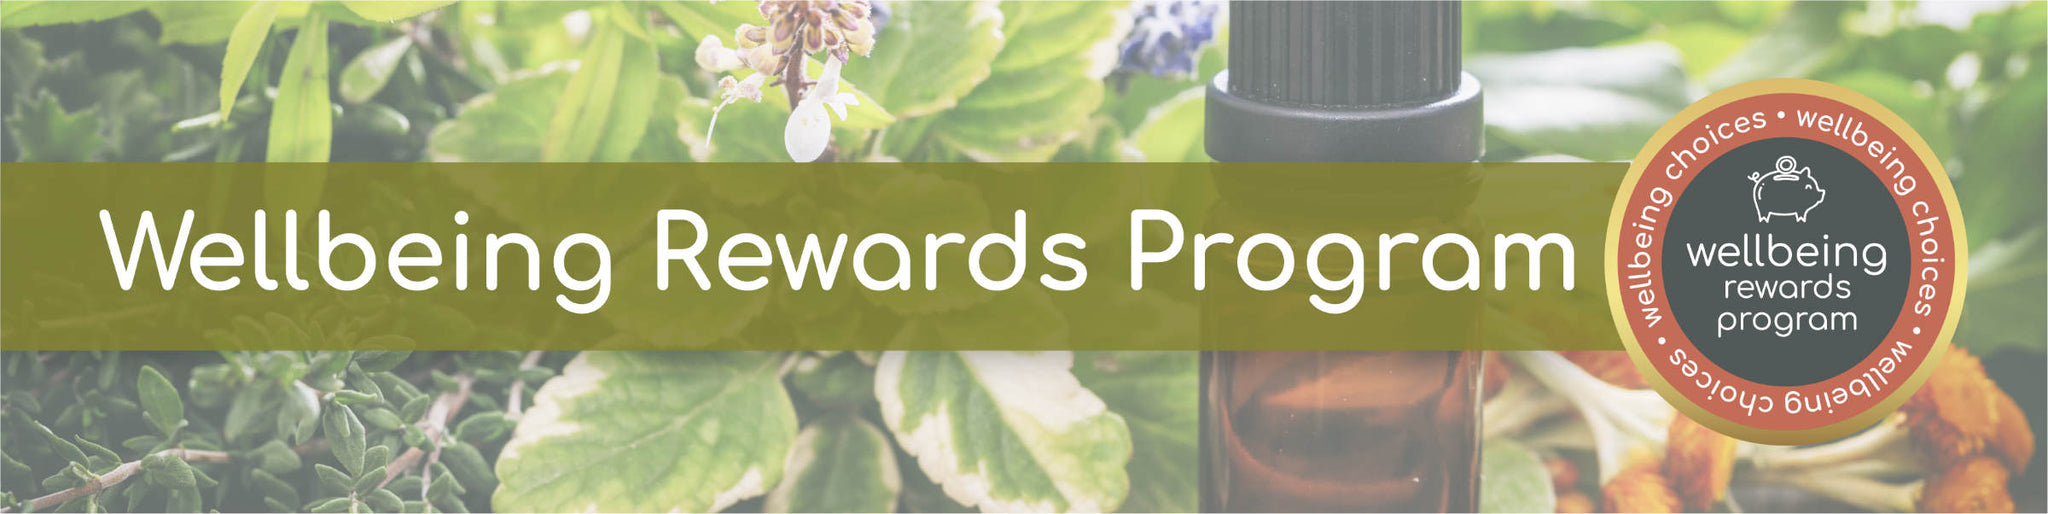 Wellbeing Rewards Program